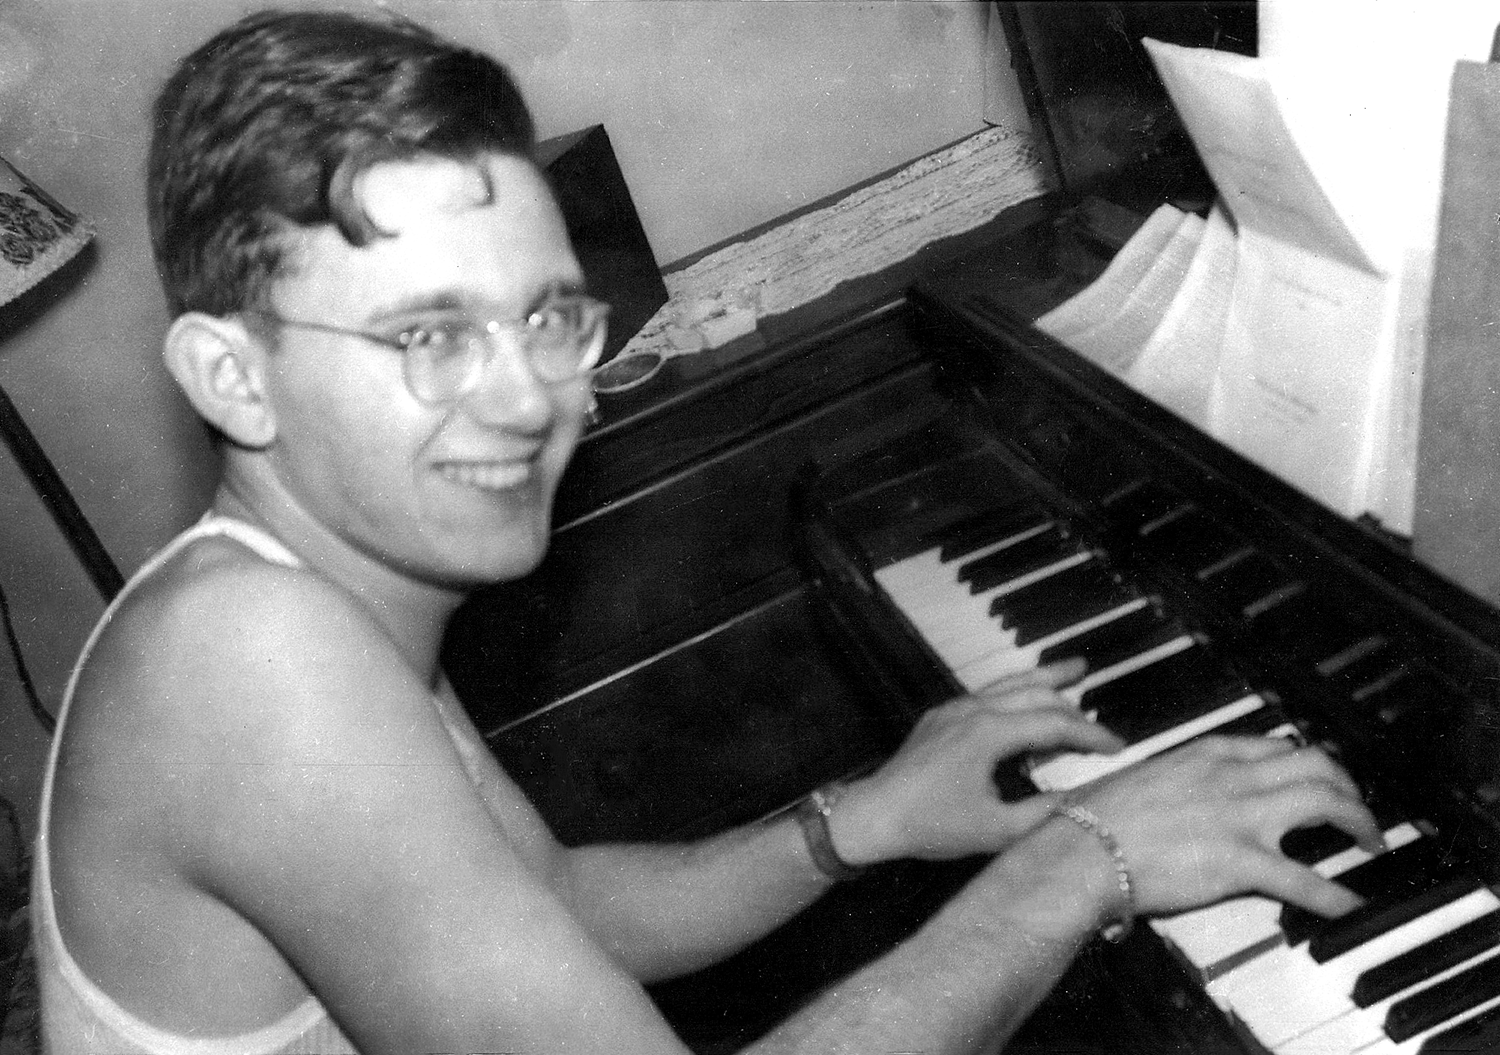 Young Arthur Secunda at Piano